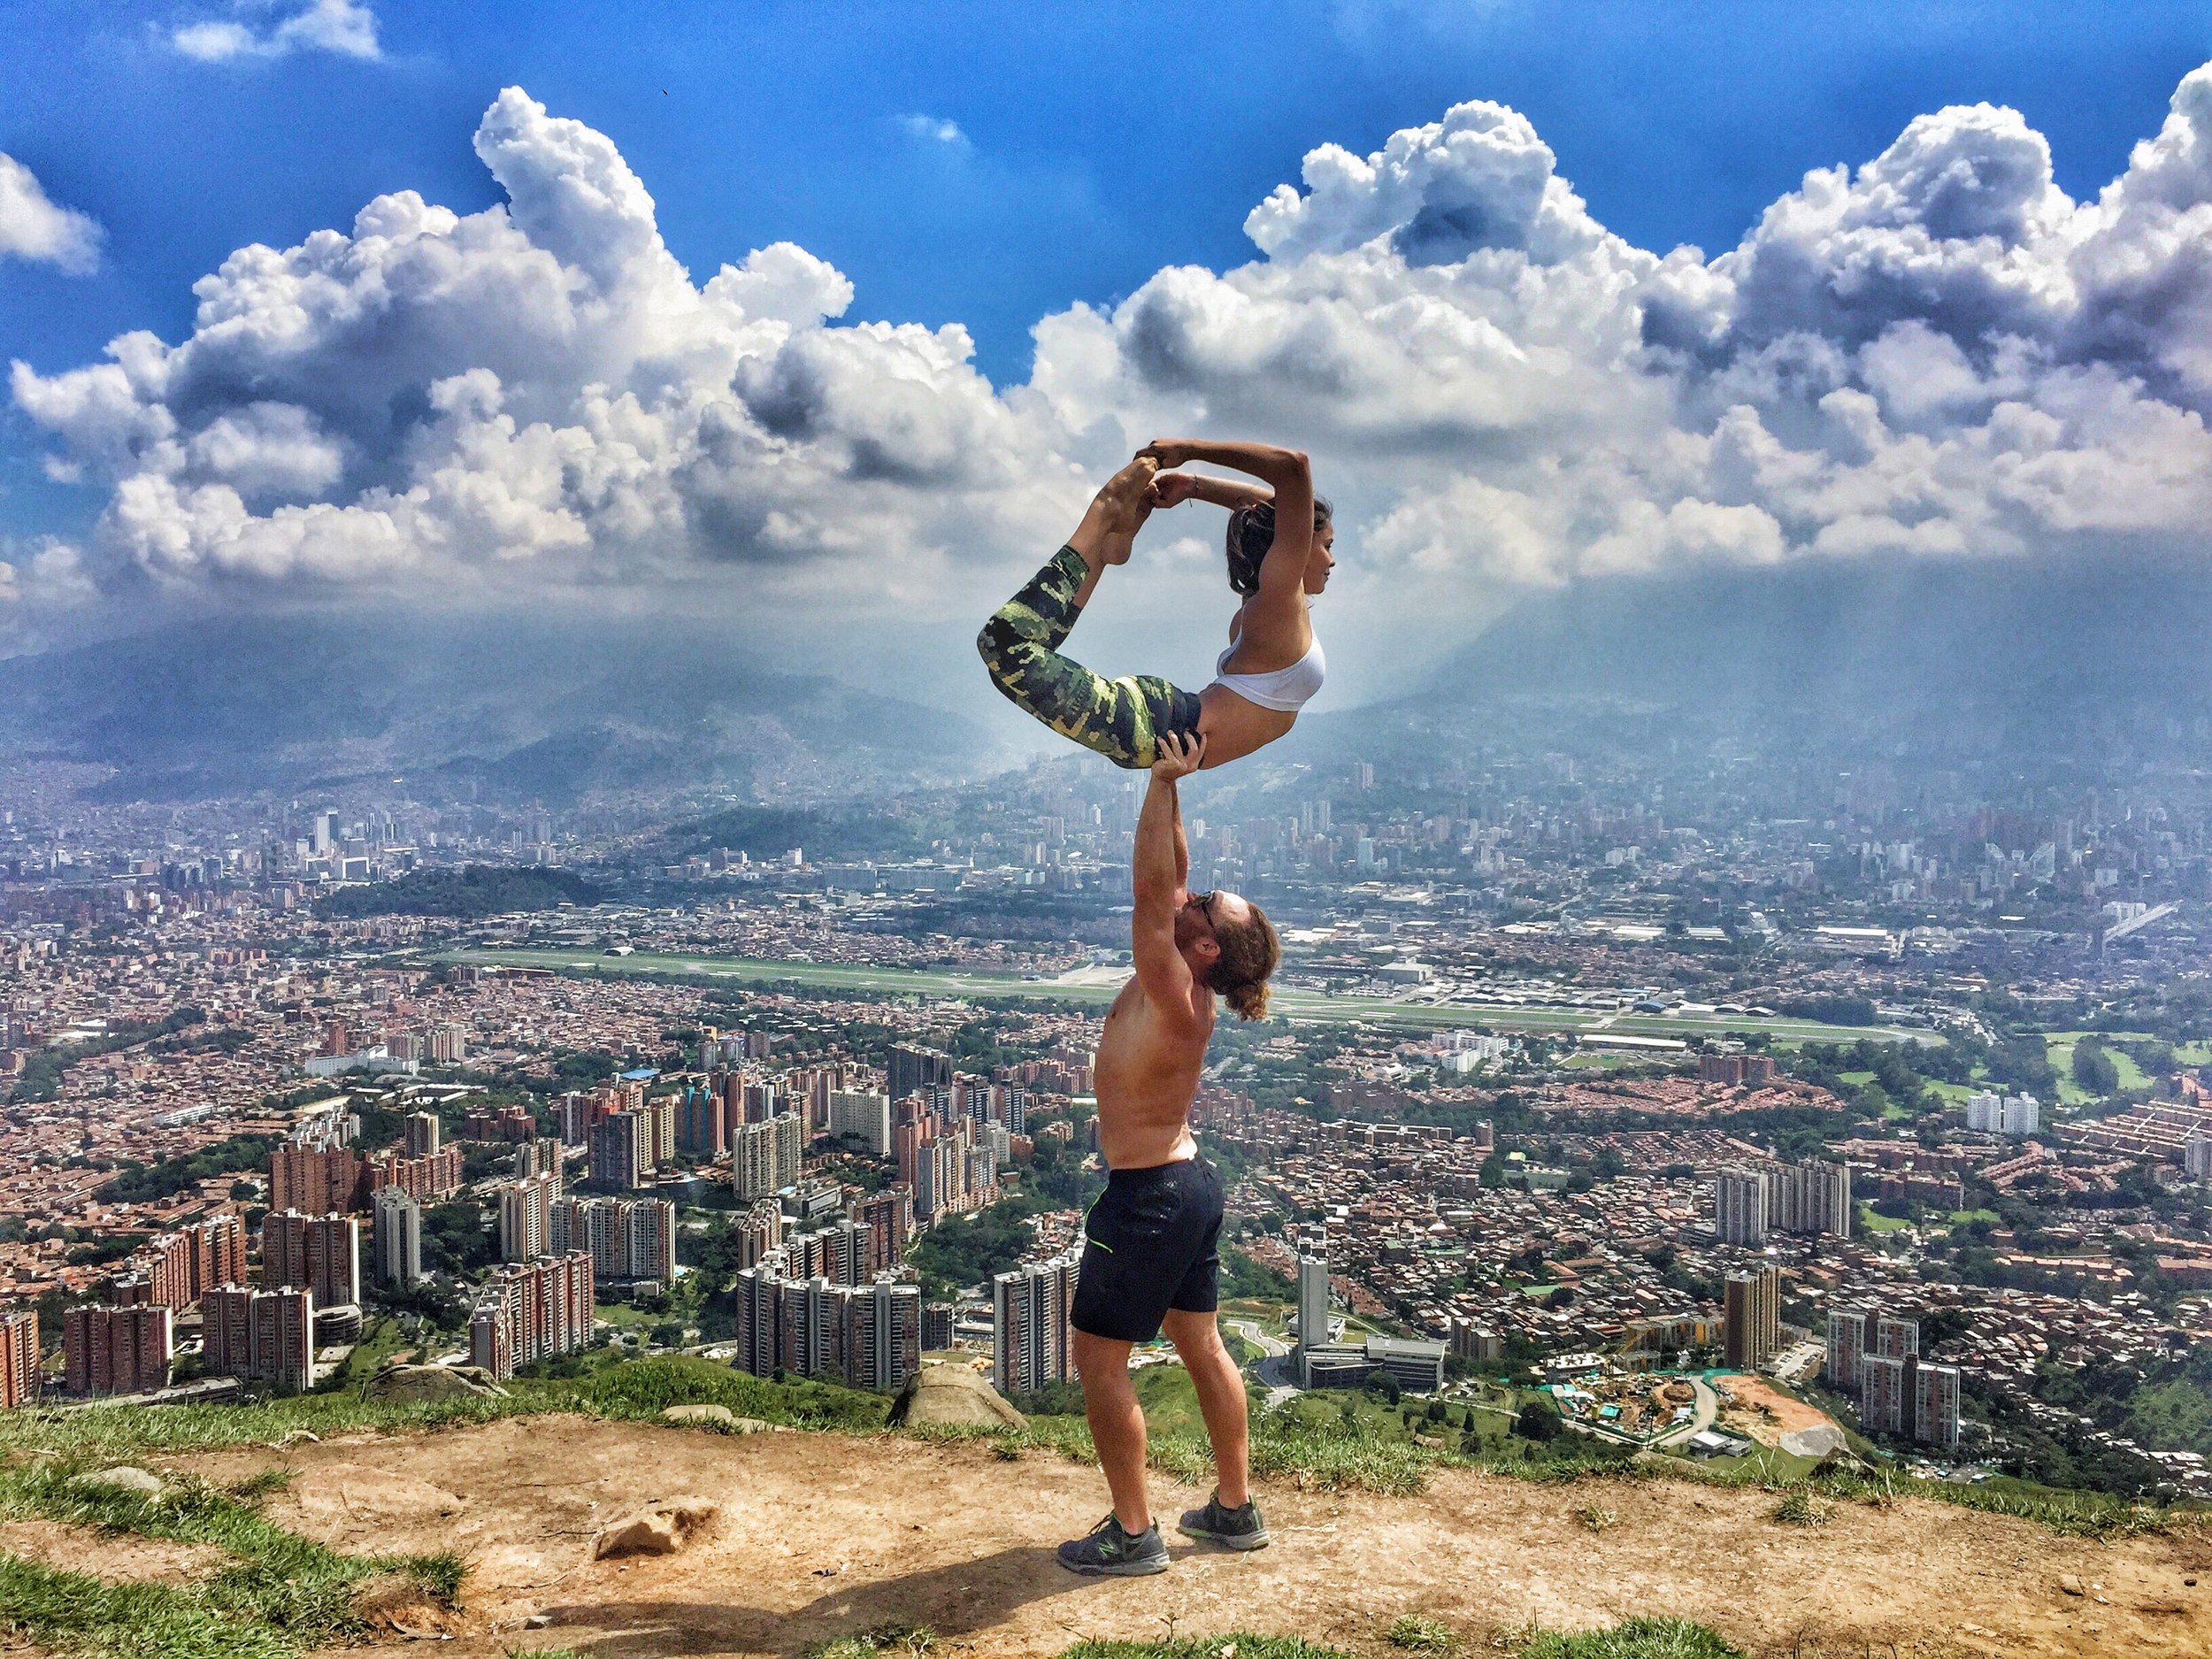 AcroYoga and City